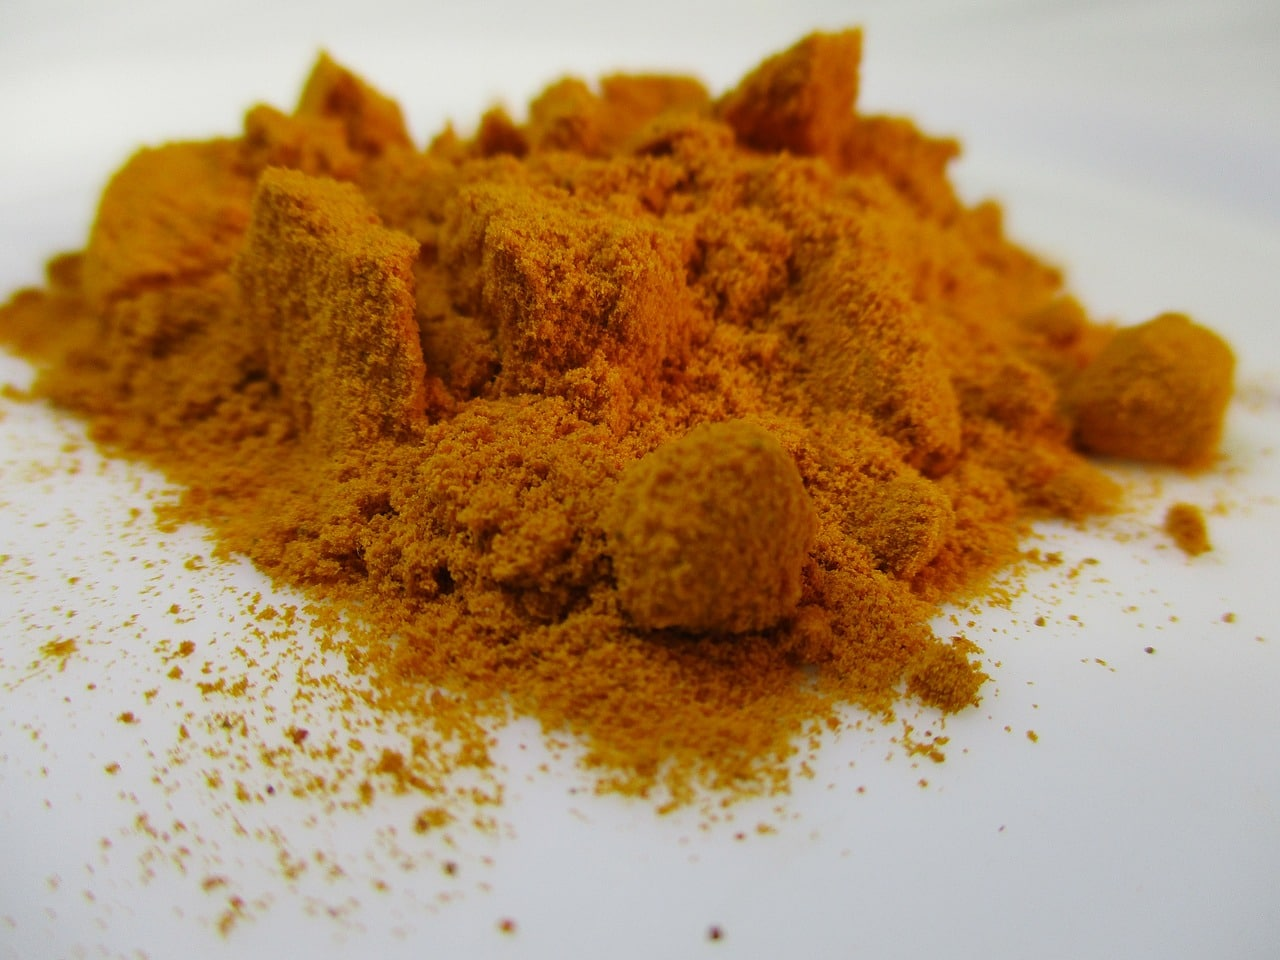 Increase Bioavailability Curcumin Article Image